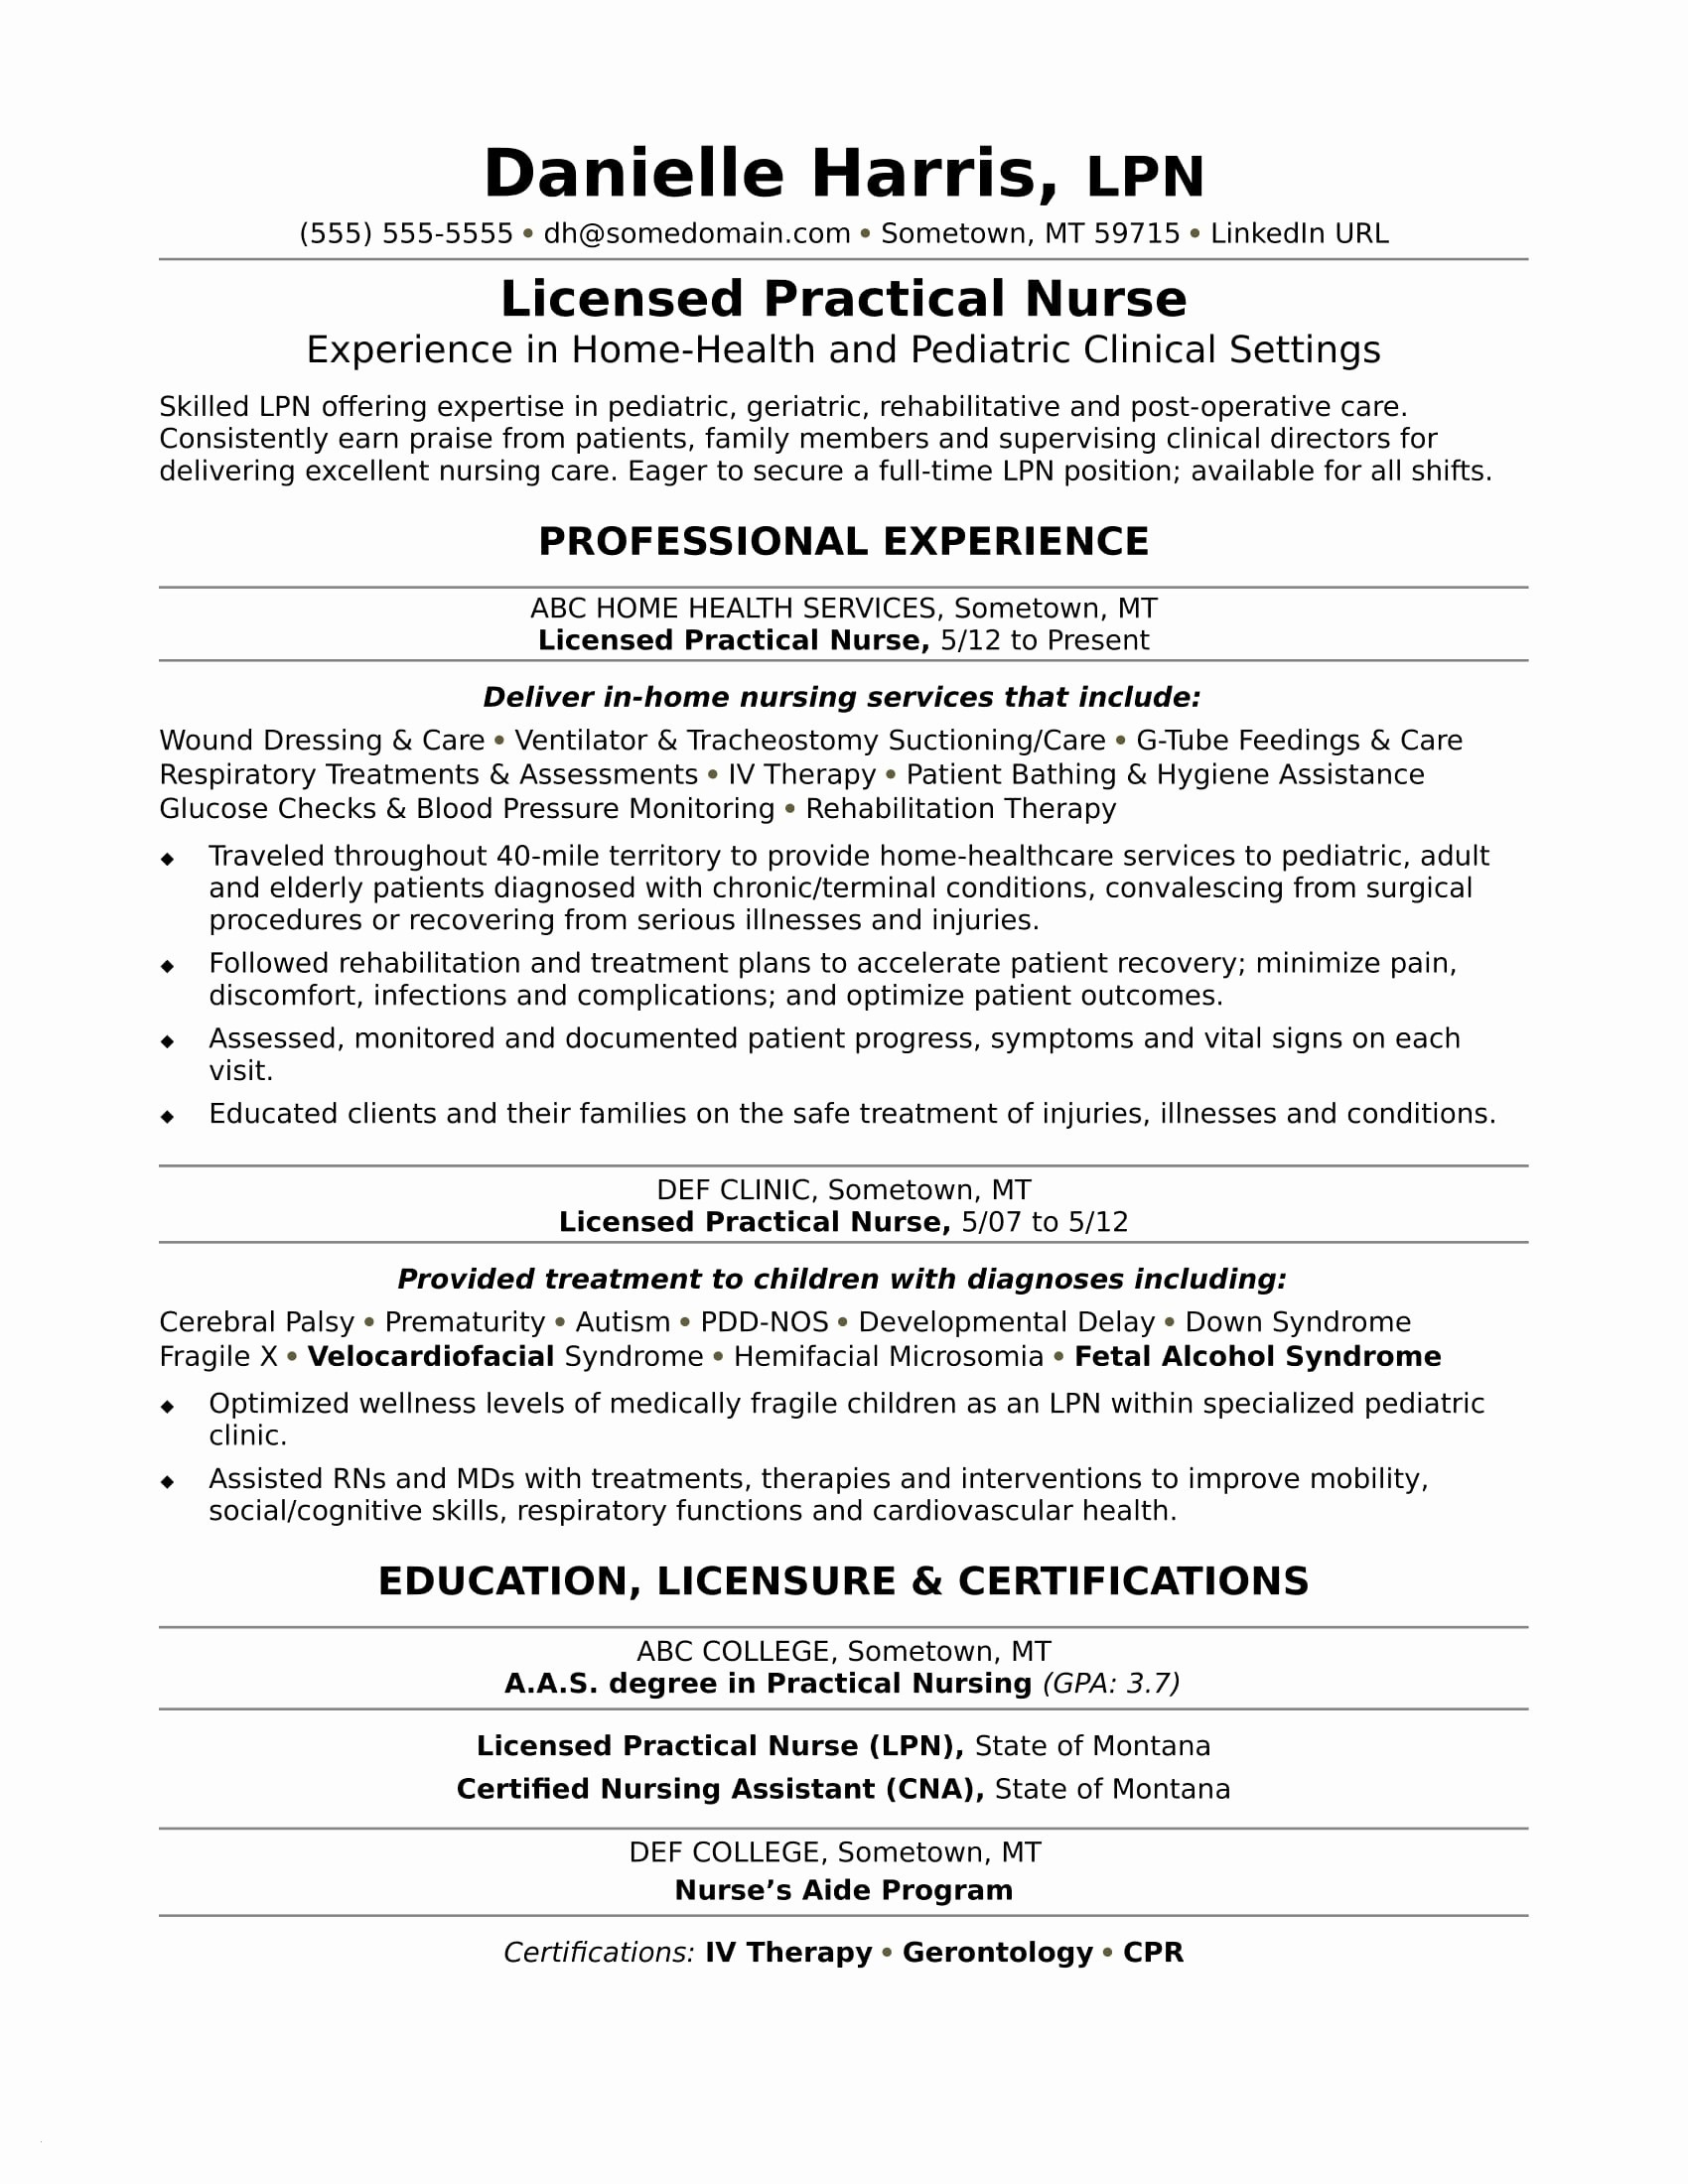 salesperson resume template example-Salesperson Resume Template Fresh New Nurse Resume Awesome Nurse Resume 0d Wallpapers 42 Beautiful Awesome 3-g